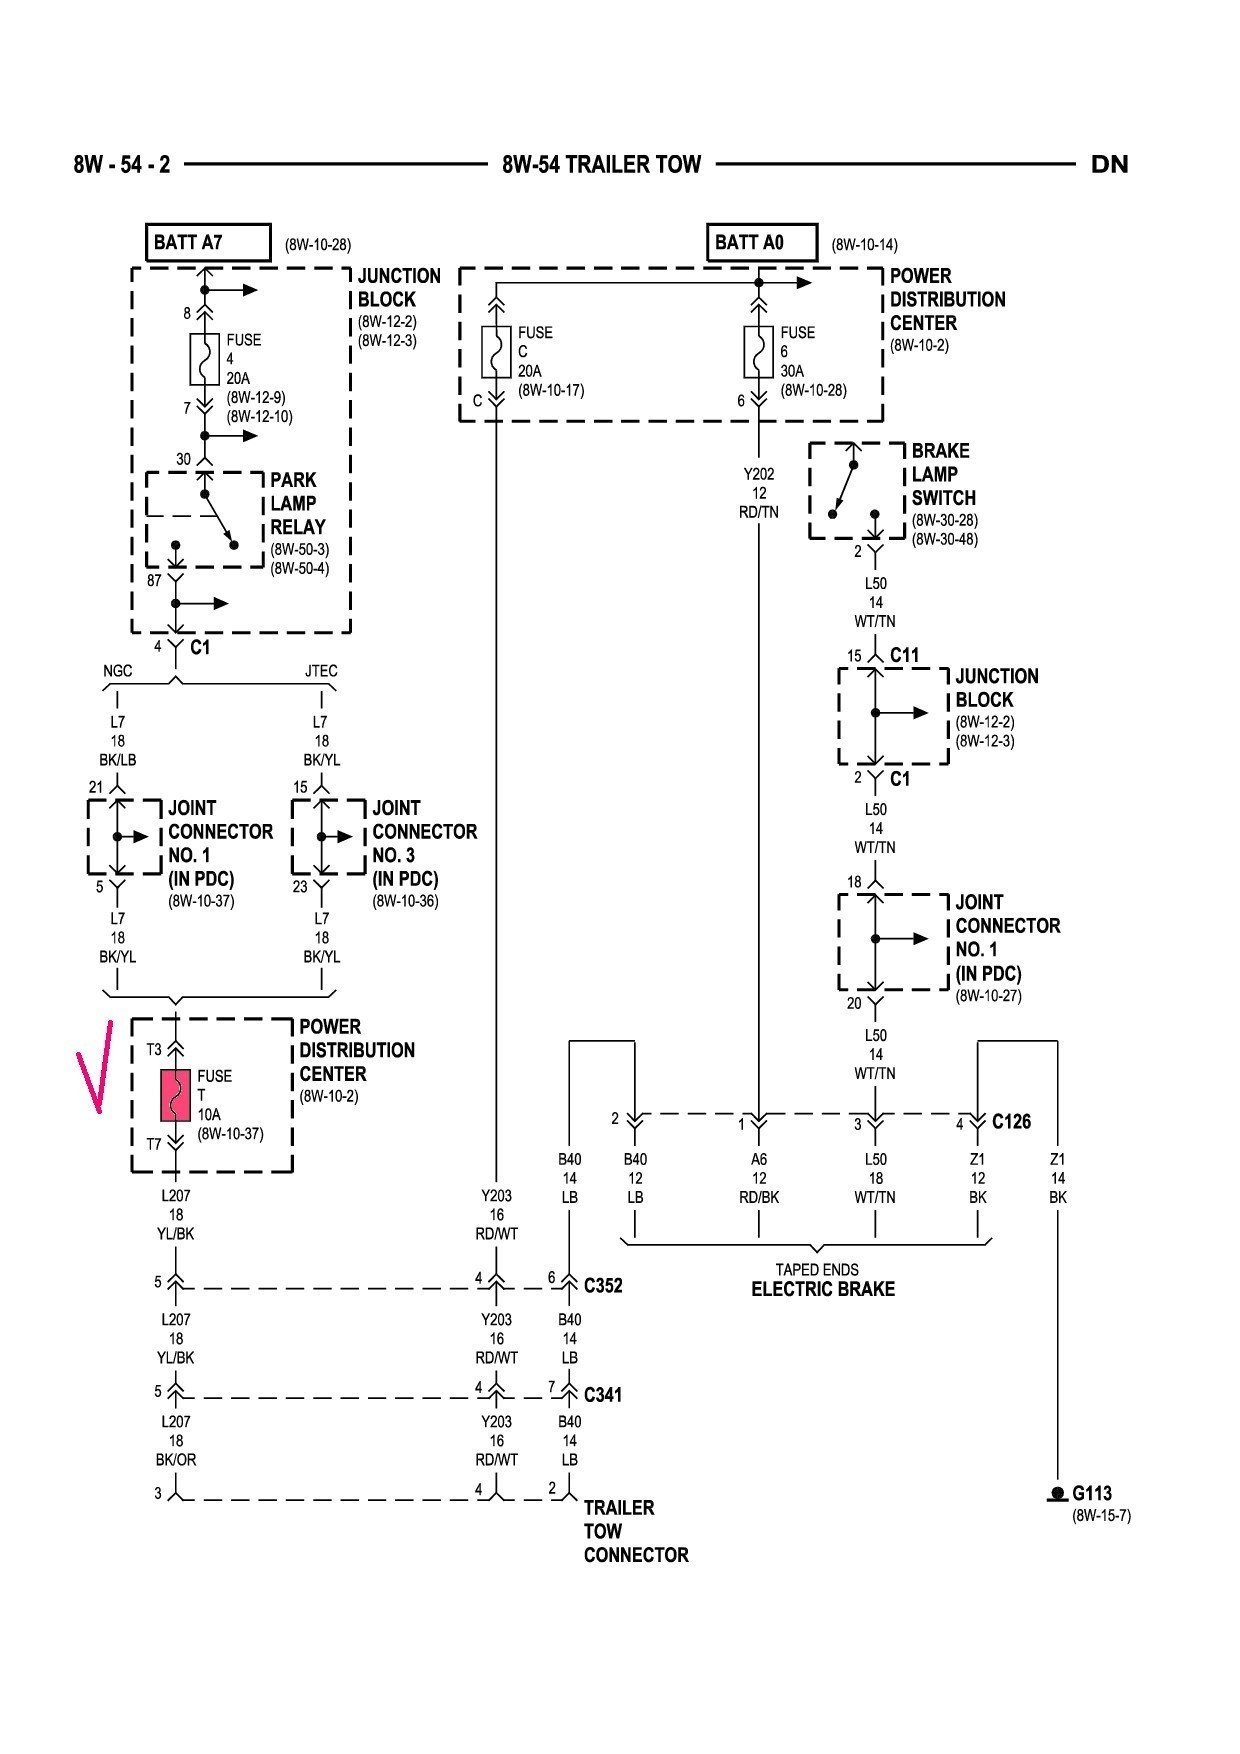 hight resolution of 2012 dodge ram trailer wiring diagram trailer wiring diagram for dodge durango valid trailer wiring